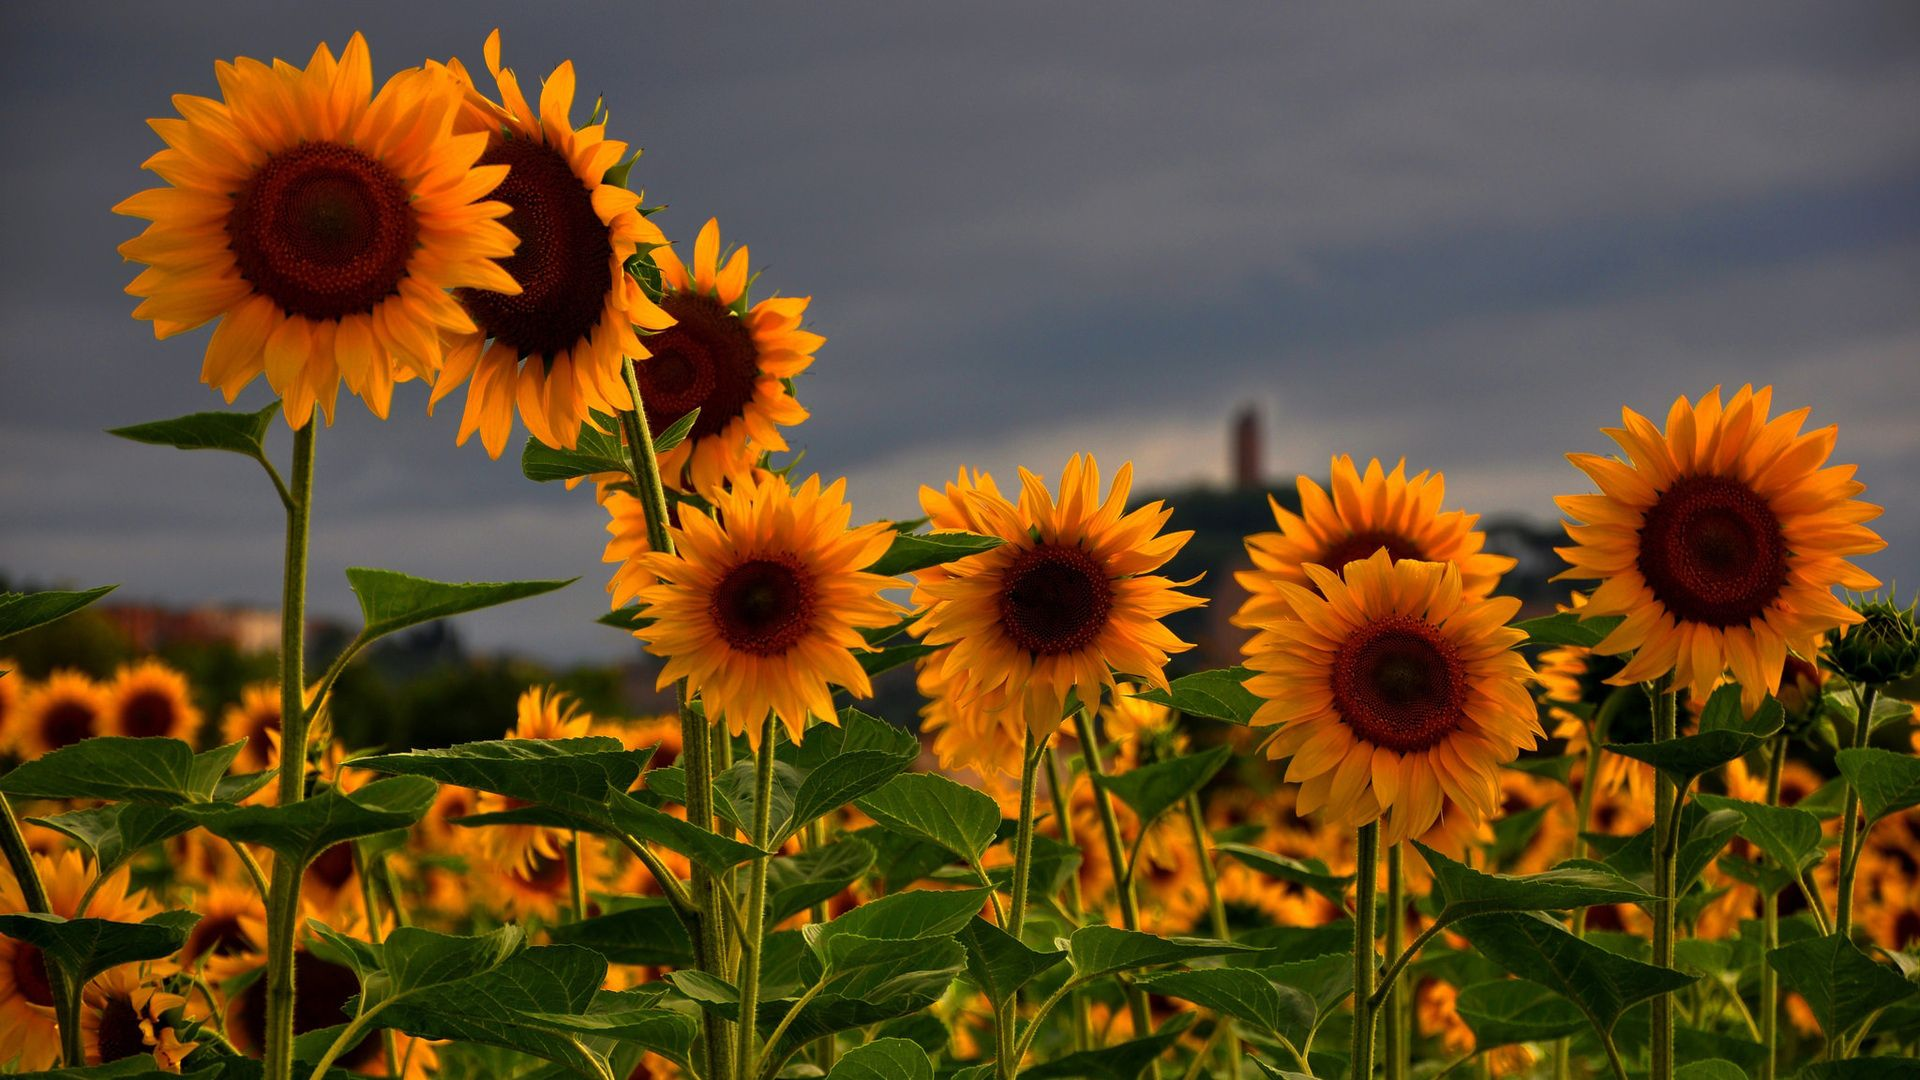 Sunflower Wallpapers Top Free Sunflower Backgrounds